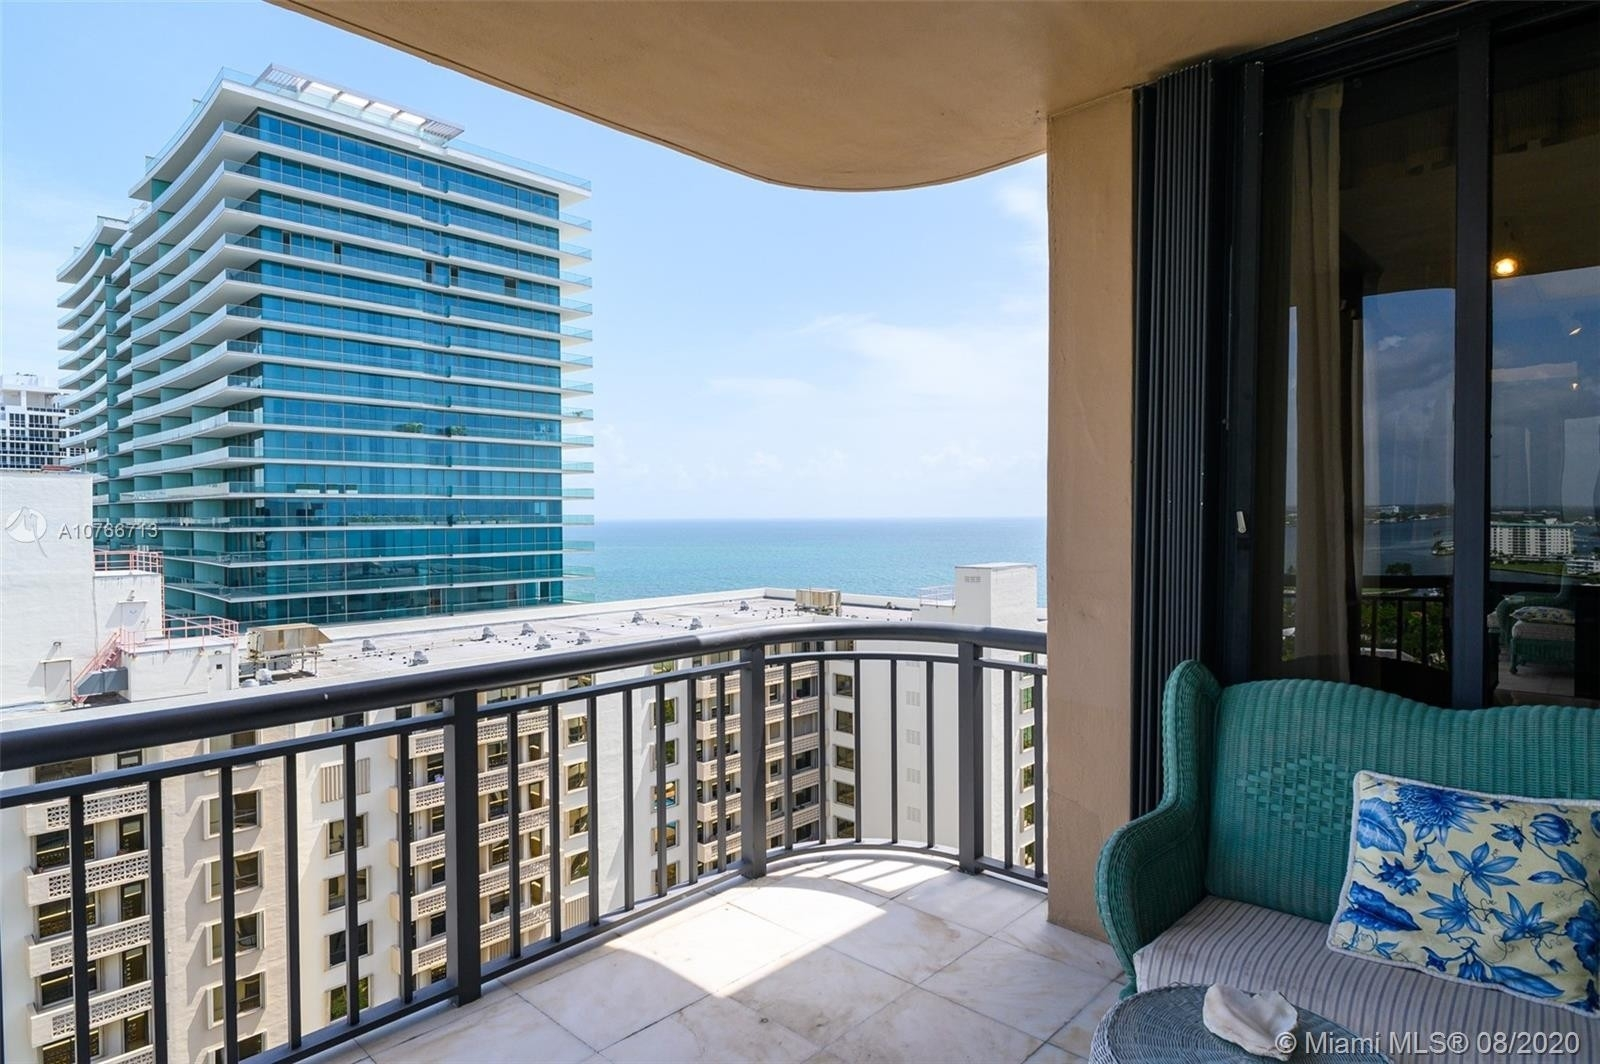 5. Condominiums for Sale at 10175 Collins Ave , PH5 Bal Harbour, FL 33154